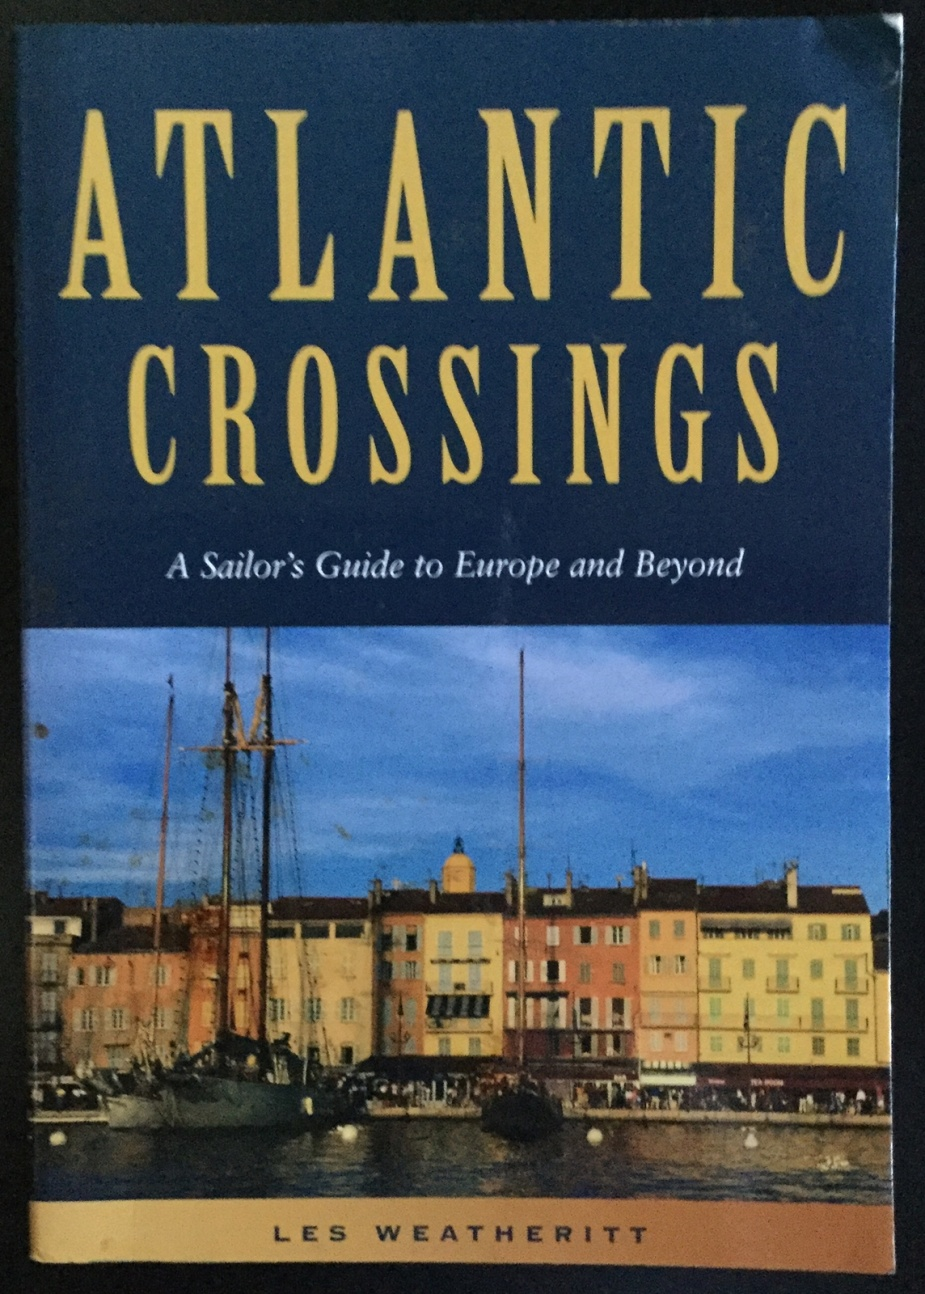 Click image for larger version  Name:Atlantic Crossings.jpg Views:62 Size:427.2 KB ID:176483